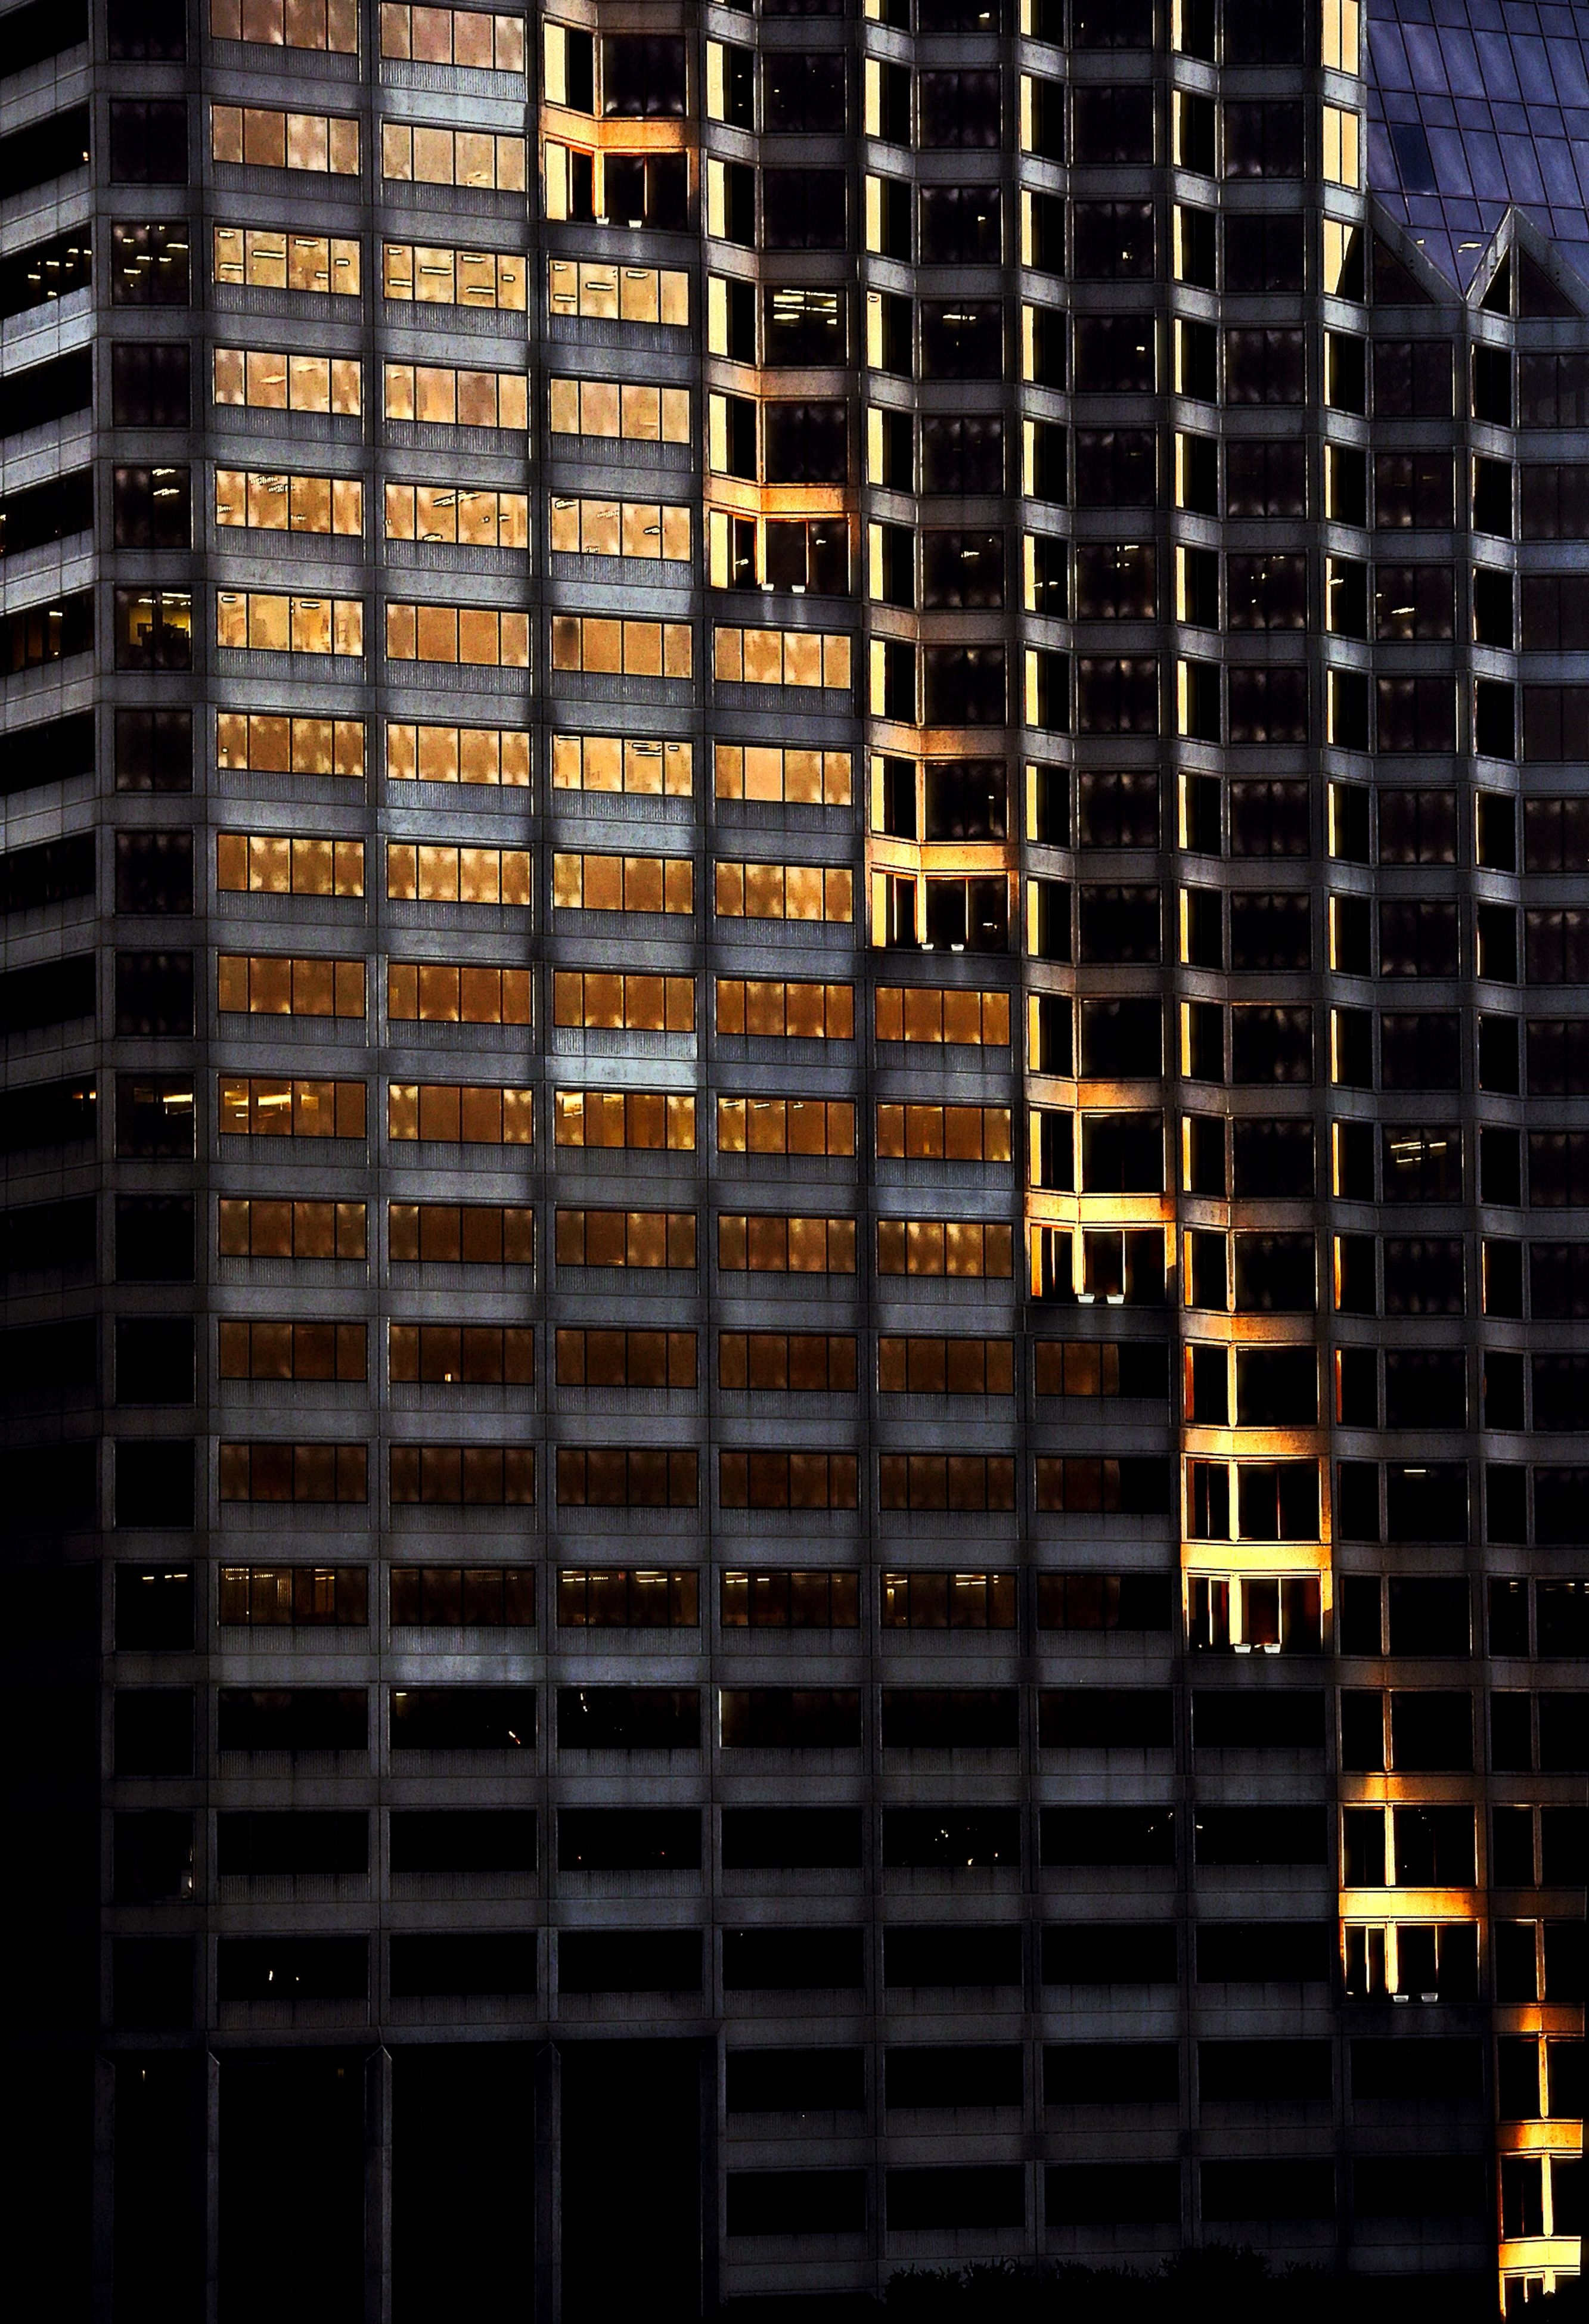 building exterior, architecture, built structure, modern, city, building, office building, low angle view, pattern, skyscraper, full frame, window, tall - high, backgrounds, tower, reflection, outdoors, glass - material, no people, repetition